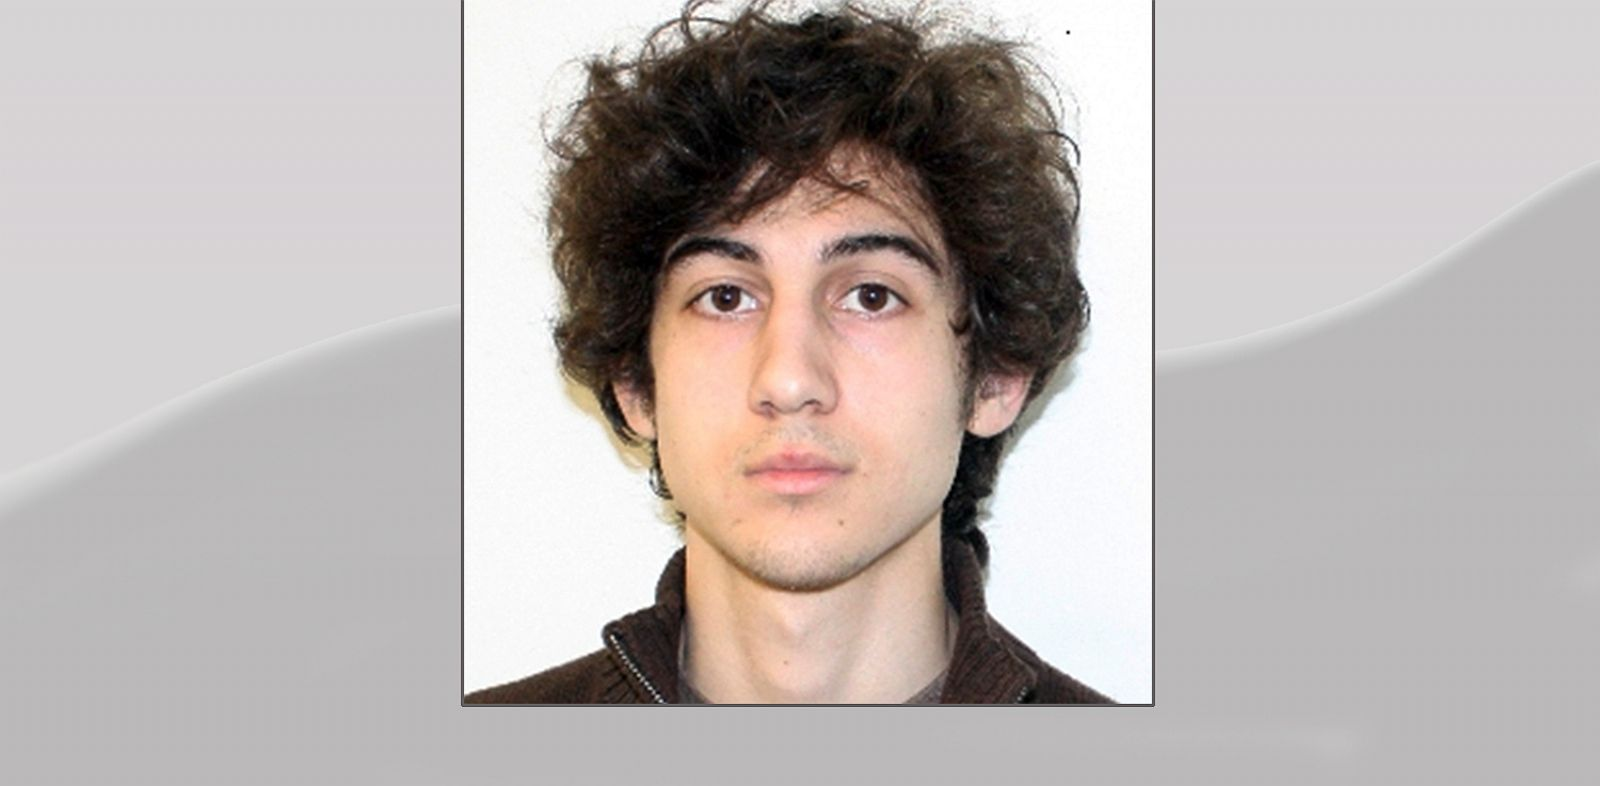 PHOTO: Dzhokhar Tsarnaev